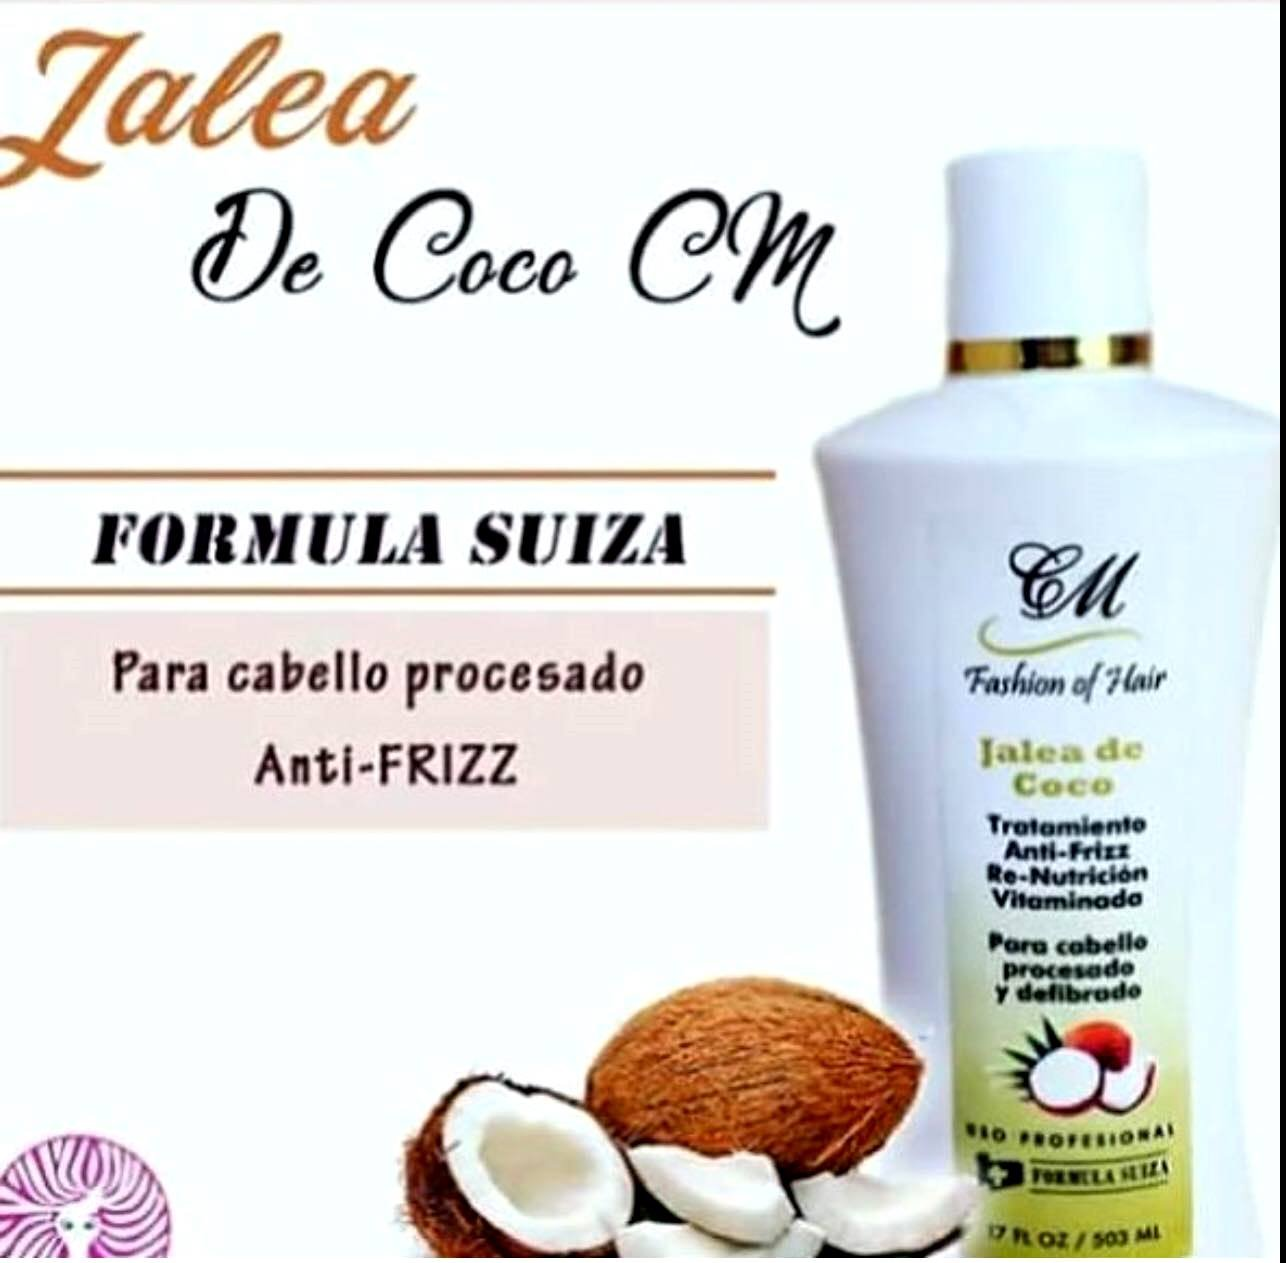 Amazon.com: Jalea de Coco Anti Frizz Para El Pelo Tratamiento Formula Suiza CM: Beauty